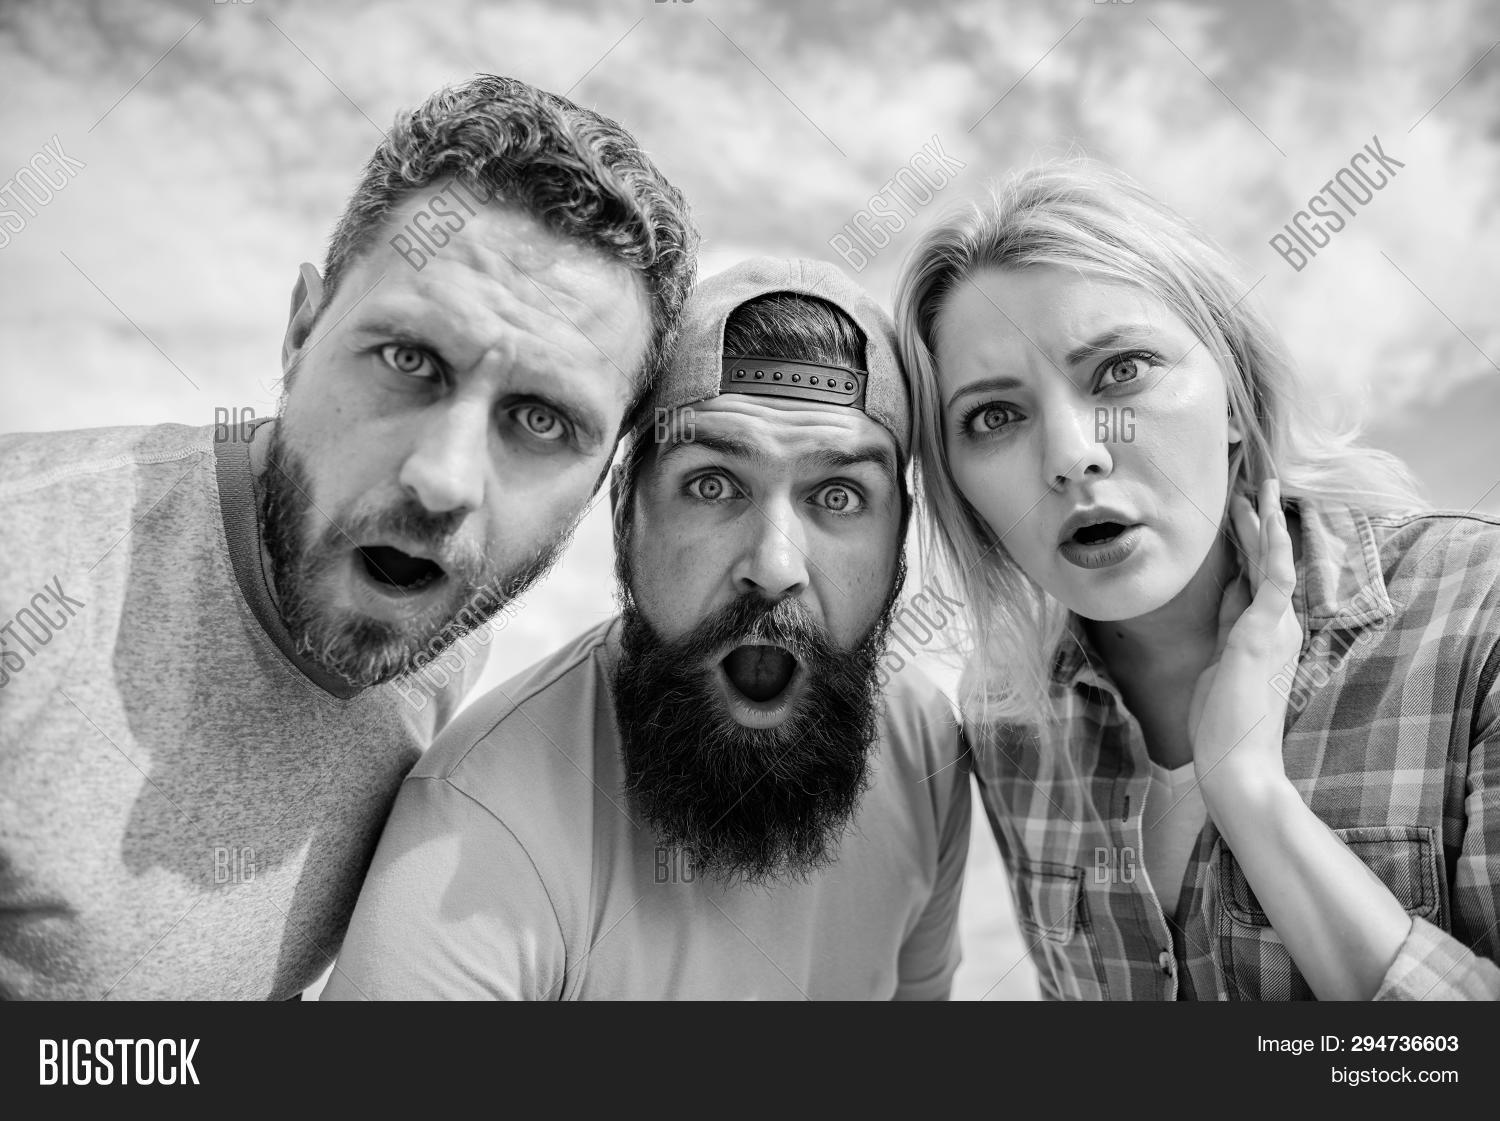 adult,amazed,background,beard,bearded,belief,close,collective,company,confident,emotional,expression,faces,friends,girl,group,hipster,how,impossible,impress,impression,is,look,looking,man,men,mind,news,no,opinion,outdoors,people,shocked,shocking,sky,stand,surprised,team,that,threesome,to,way,woman,you